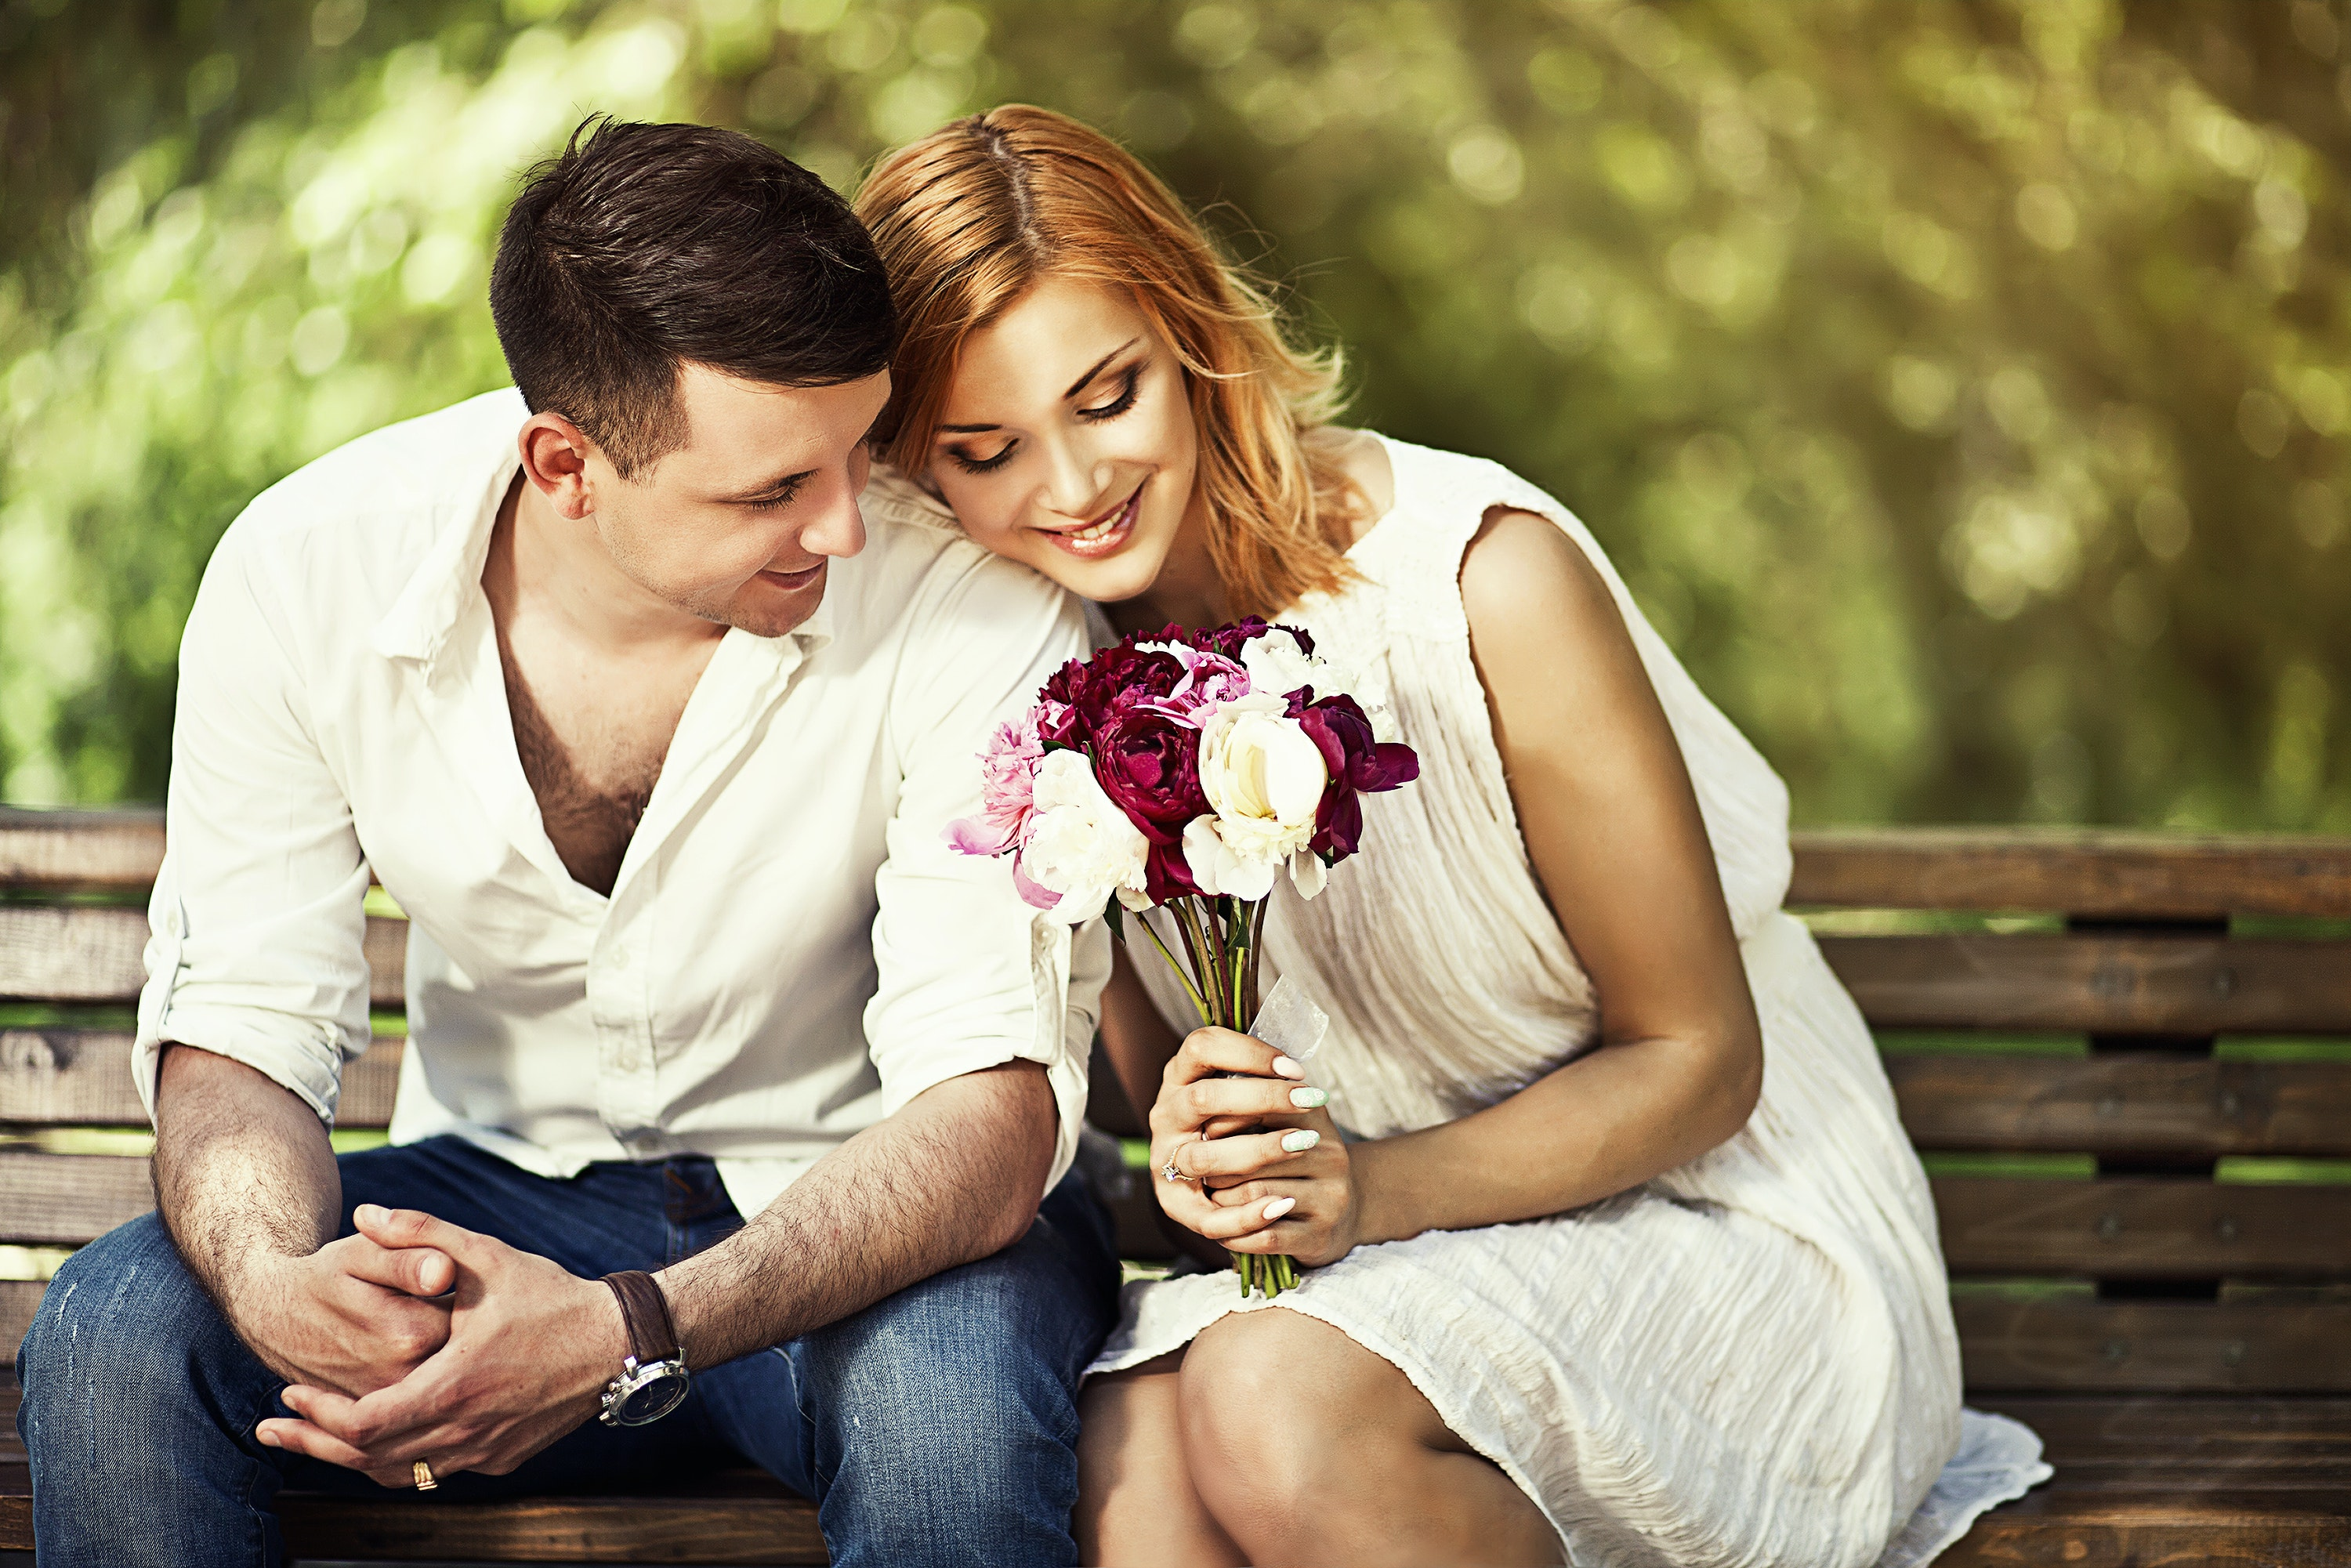 Image result for romance images